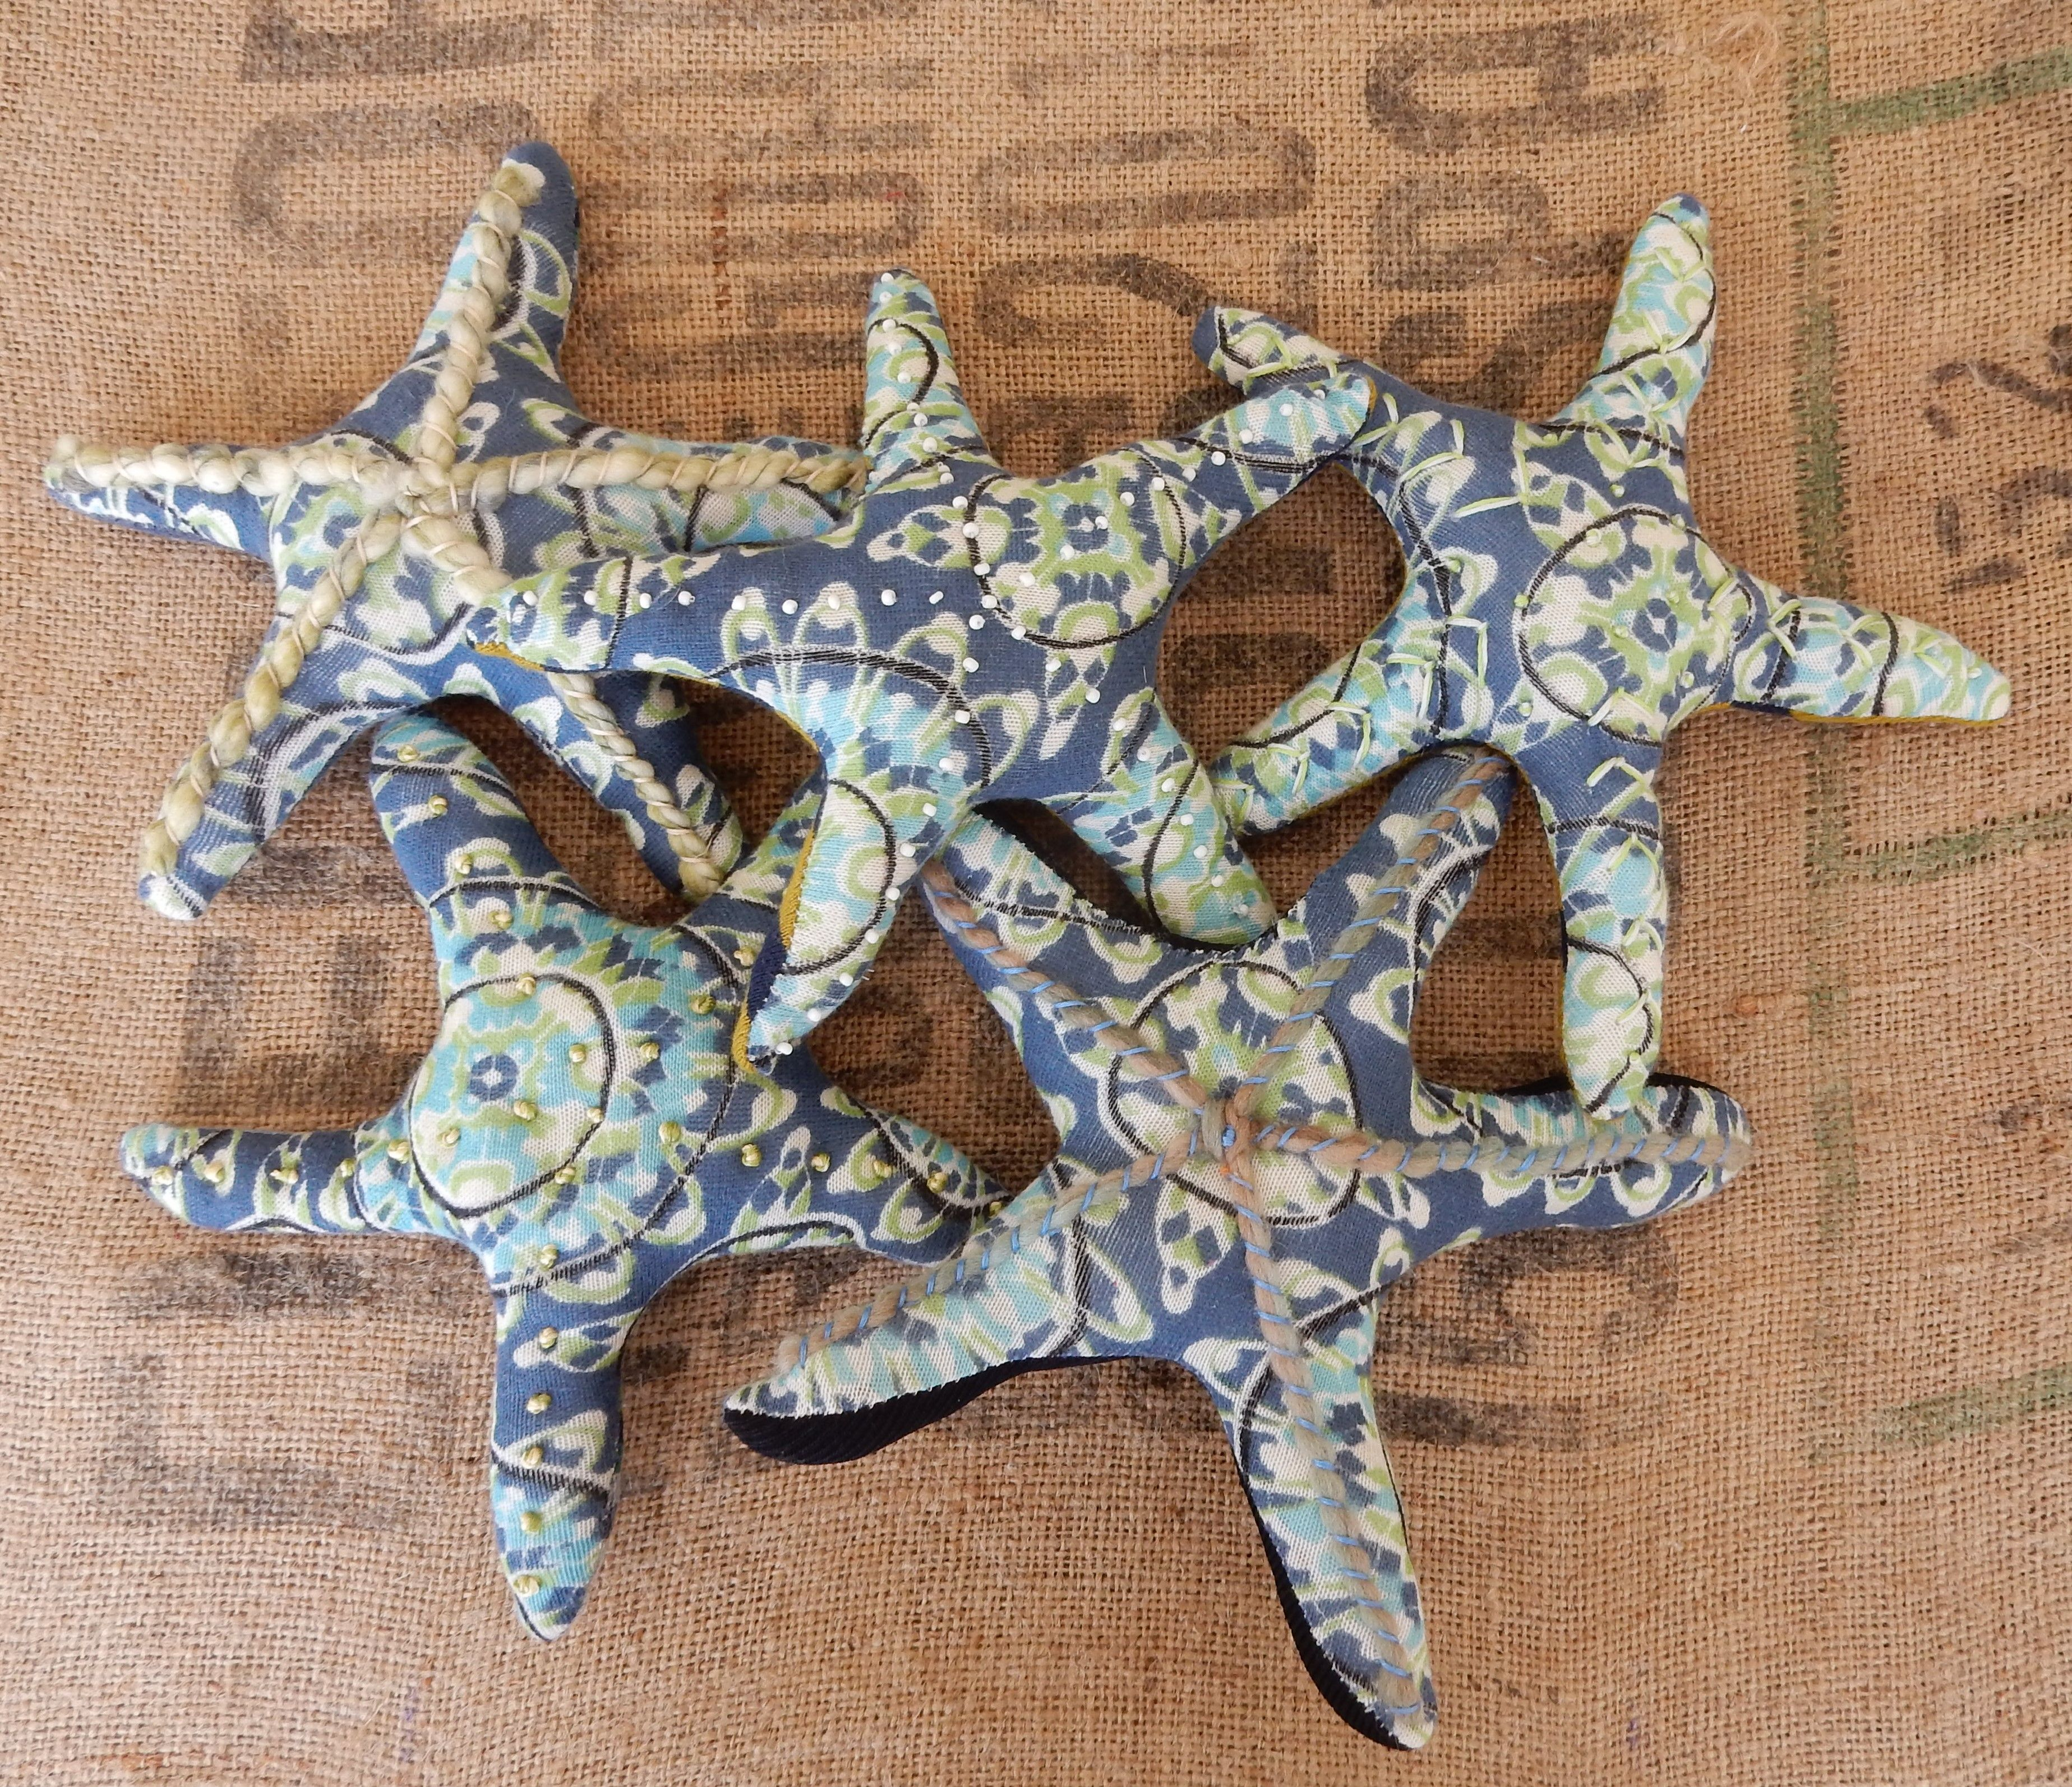 Plush Stuffed Starfish Handmade From Recycled Sweaters By